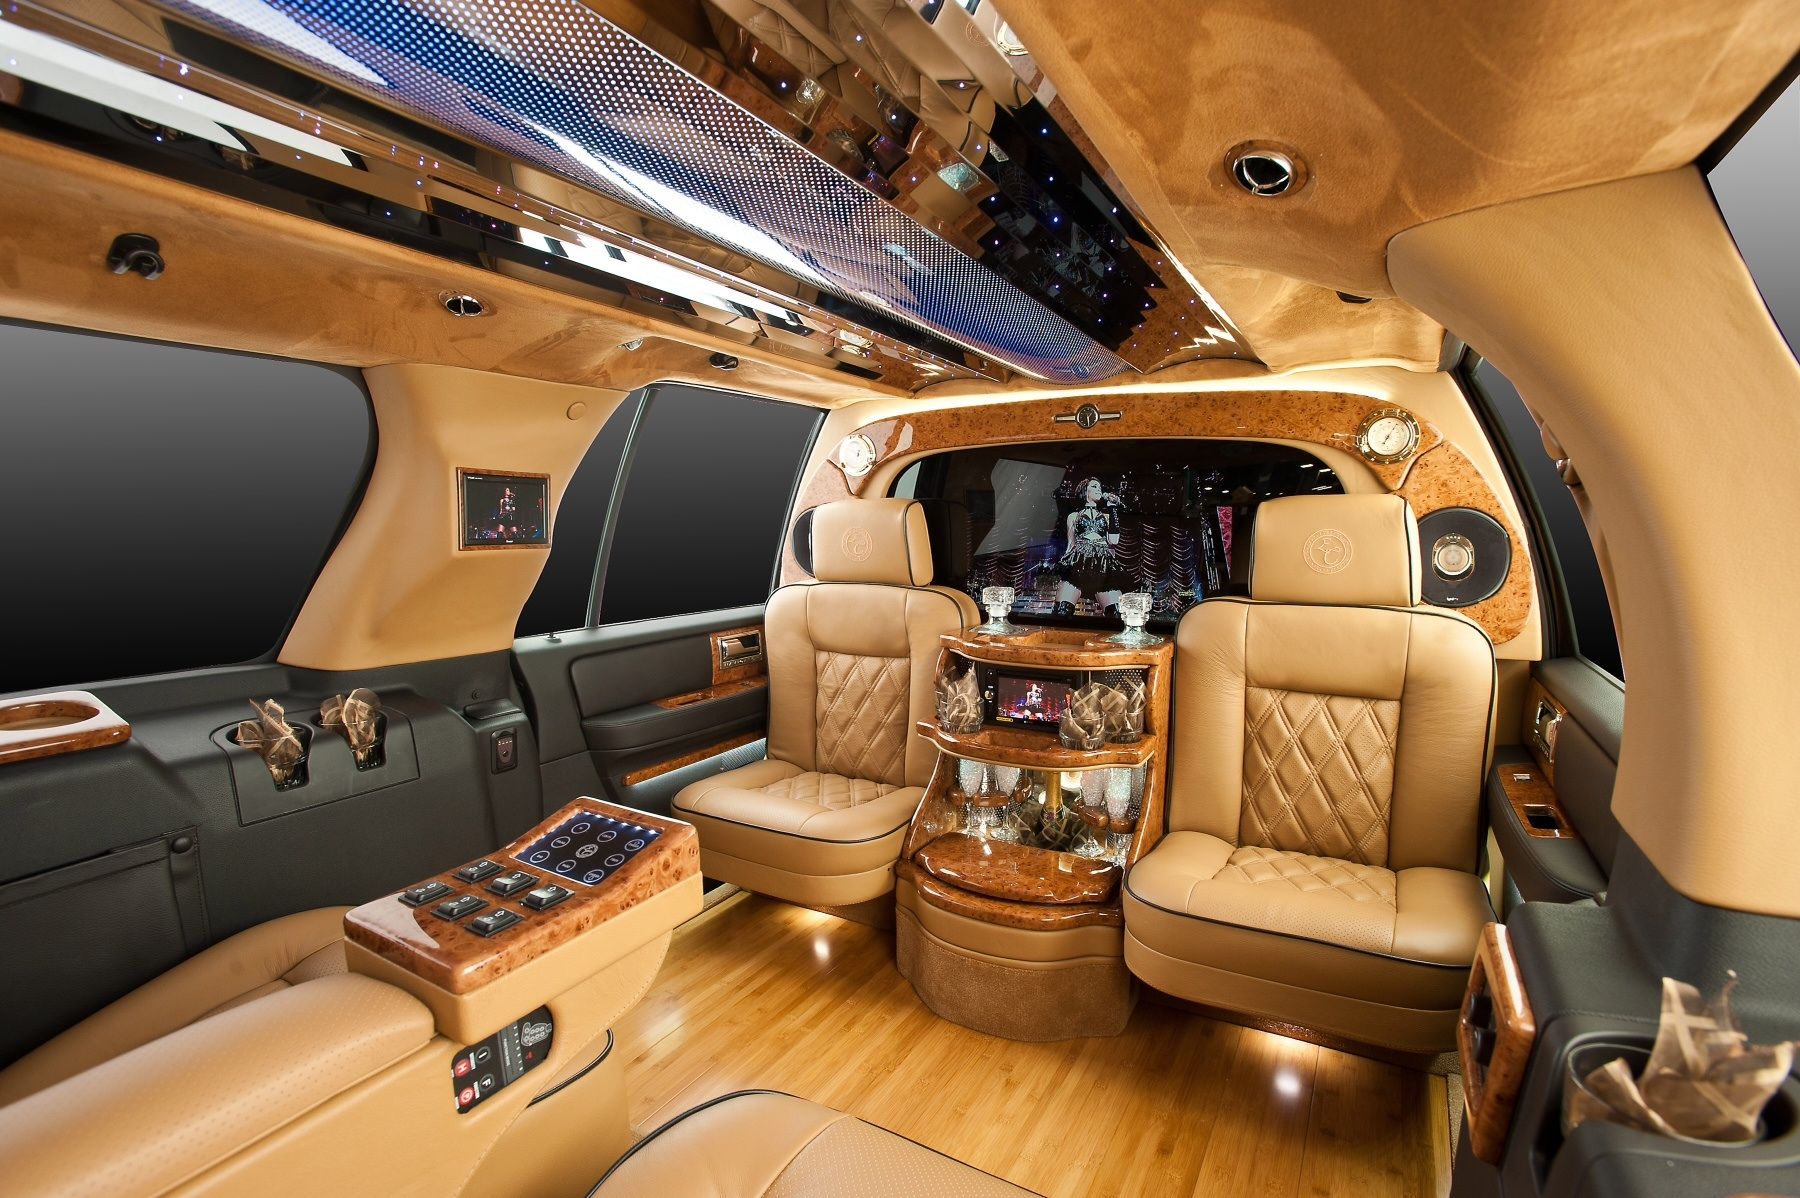 ceo sprinter limo van 7 passengers new york car service. Black Bedroom Furniture Sets. Home Design Ideas